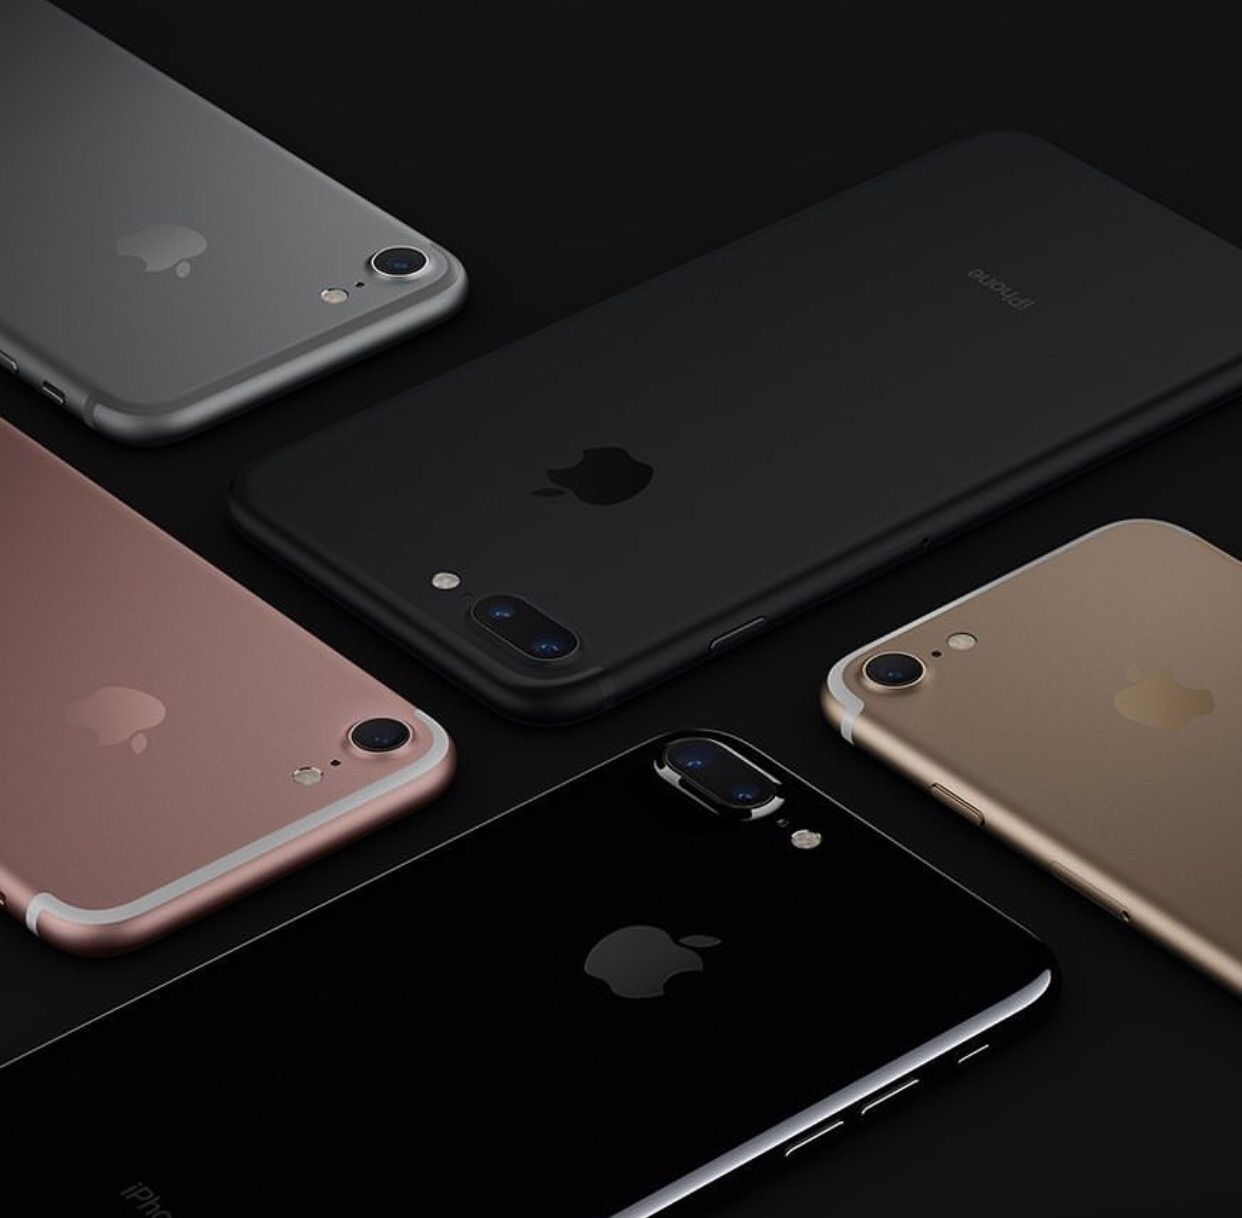 Tech Alert: iPhone7 & iPhone7 Plus Announced with New Bells and Whistles